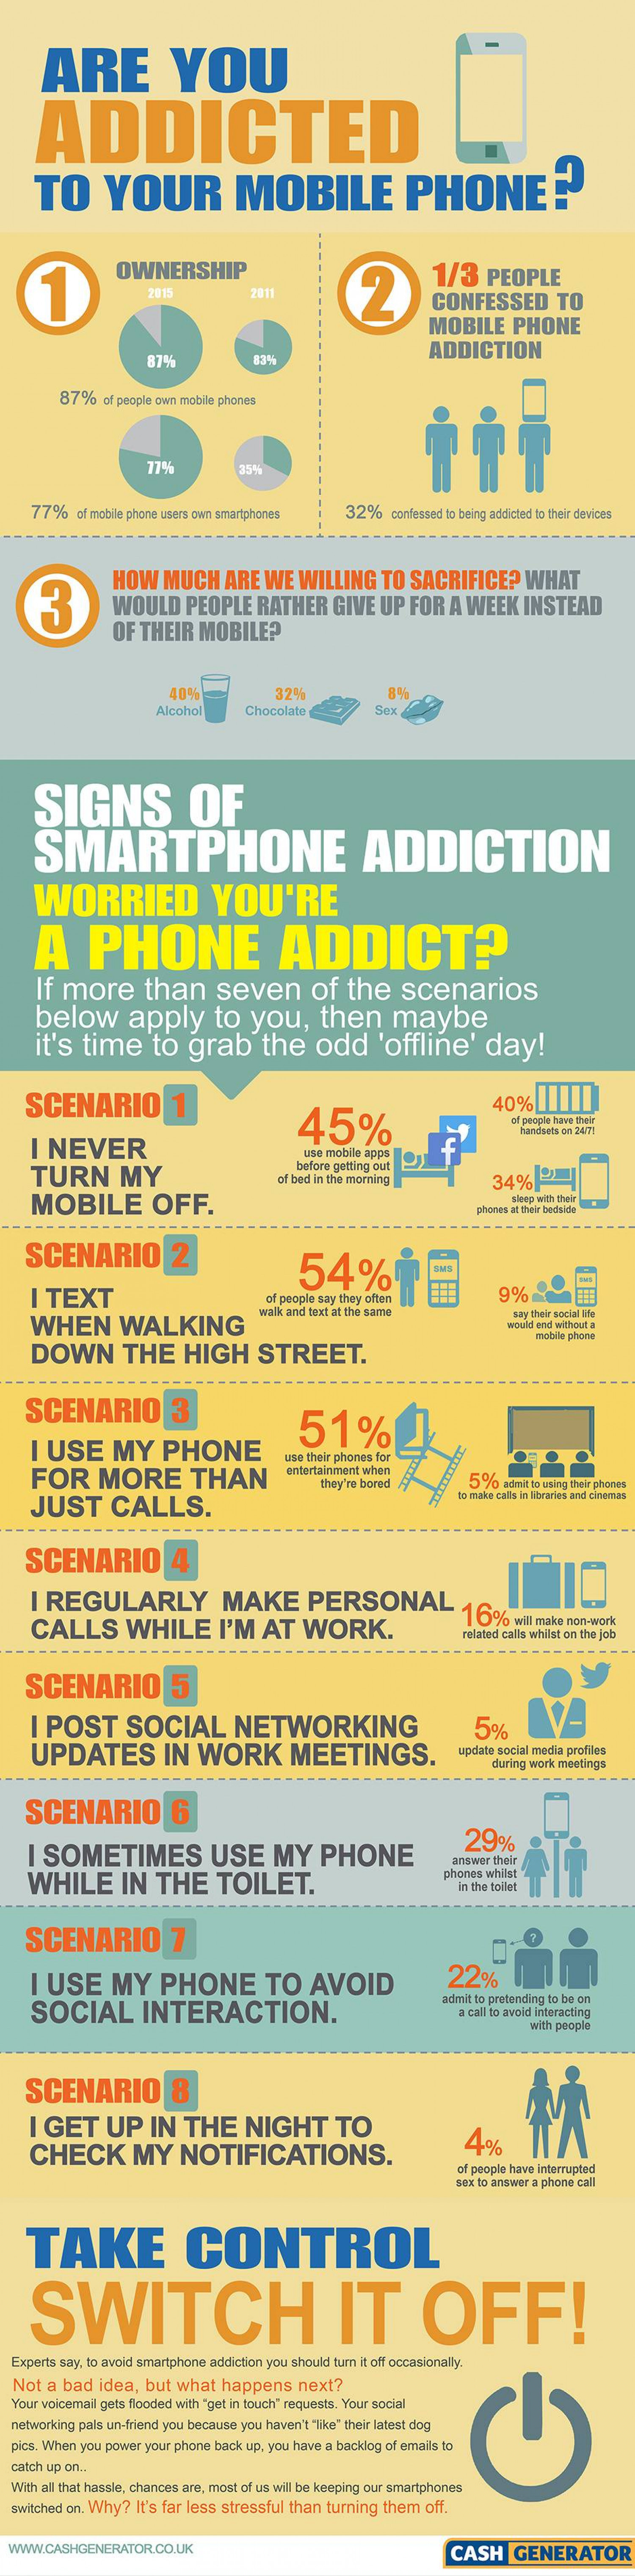 Are You Addicted to Your Mobile Phone? Infographic